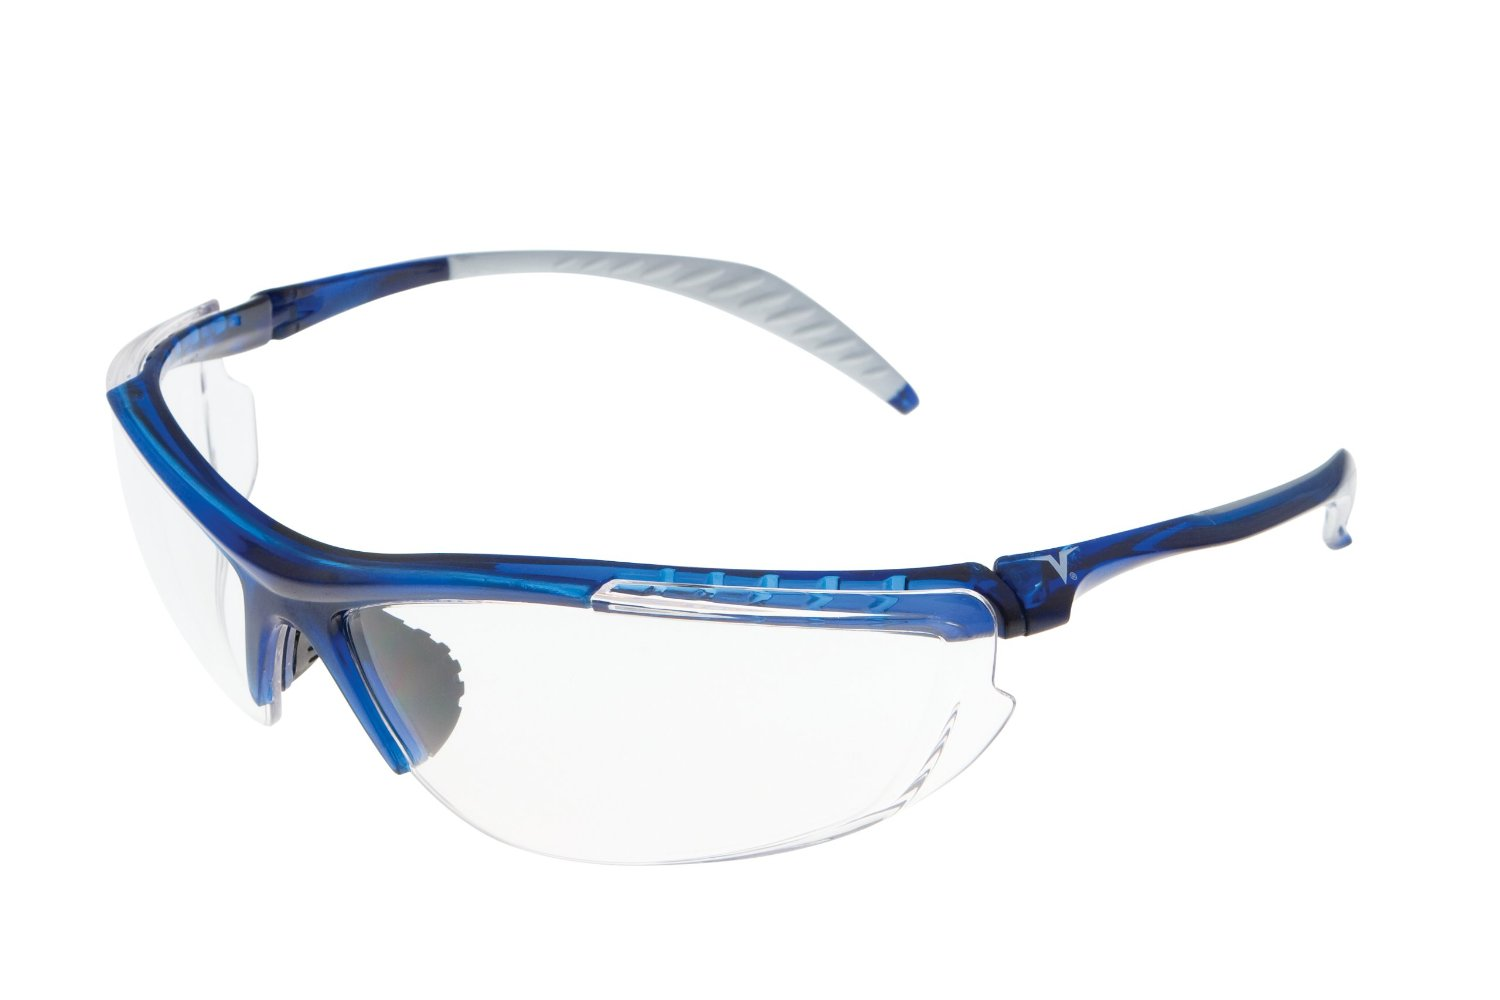 Encon Wraparound Veratti 307 Safety Glasses, Clear Lens, Translucent Blue Frame